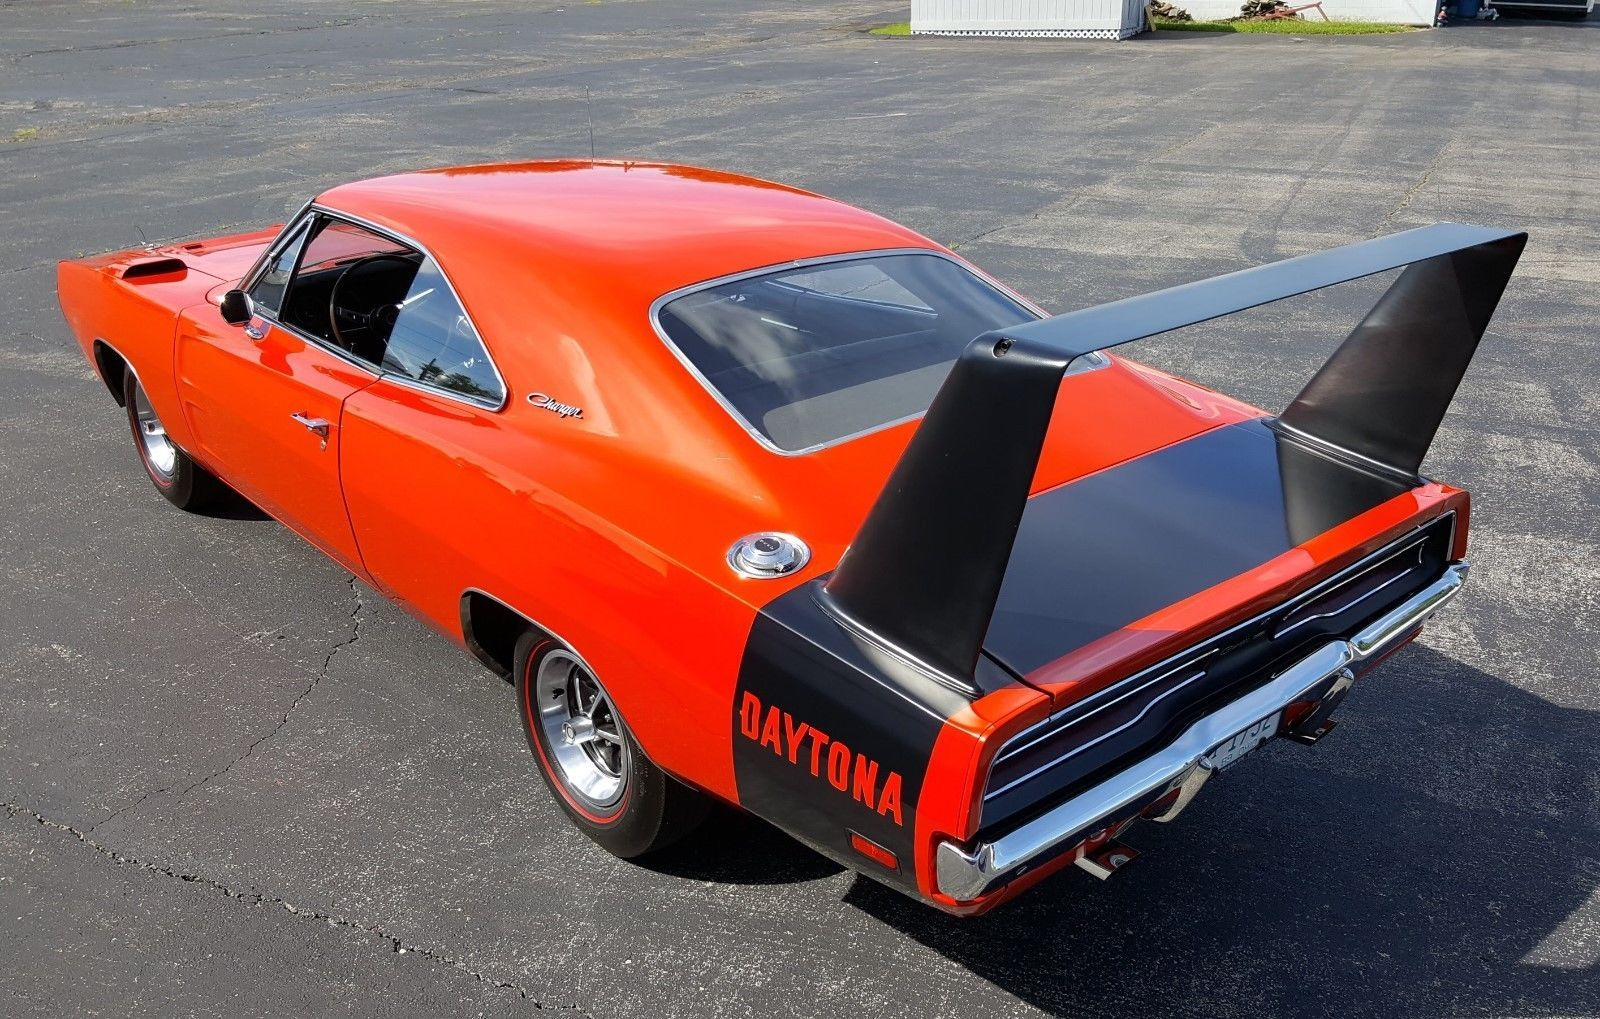 1969 Dodge Charger Ebay Dodge Charger Classic Cars Trucks 1969 Dodge Charger